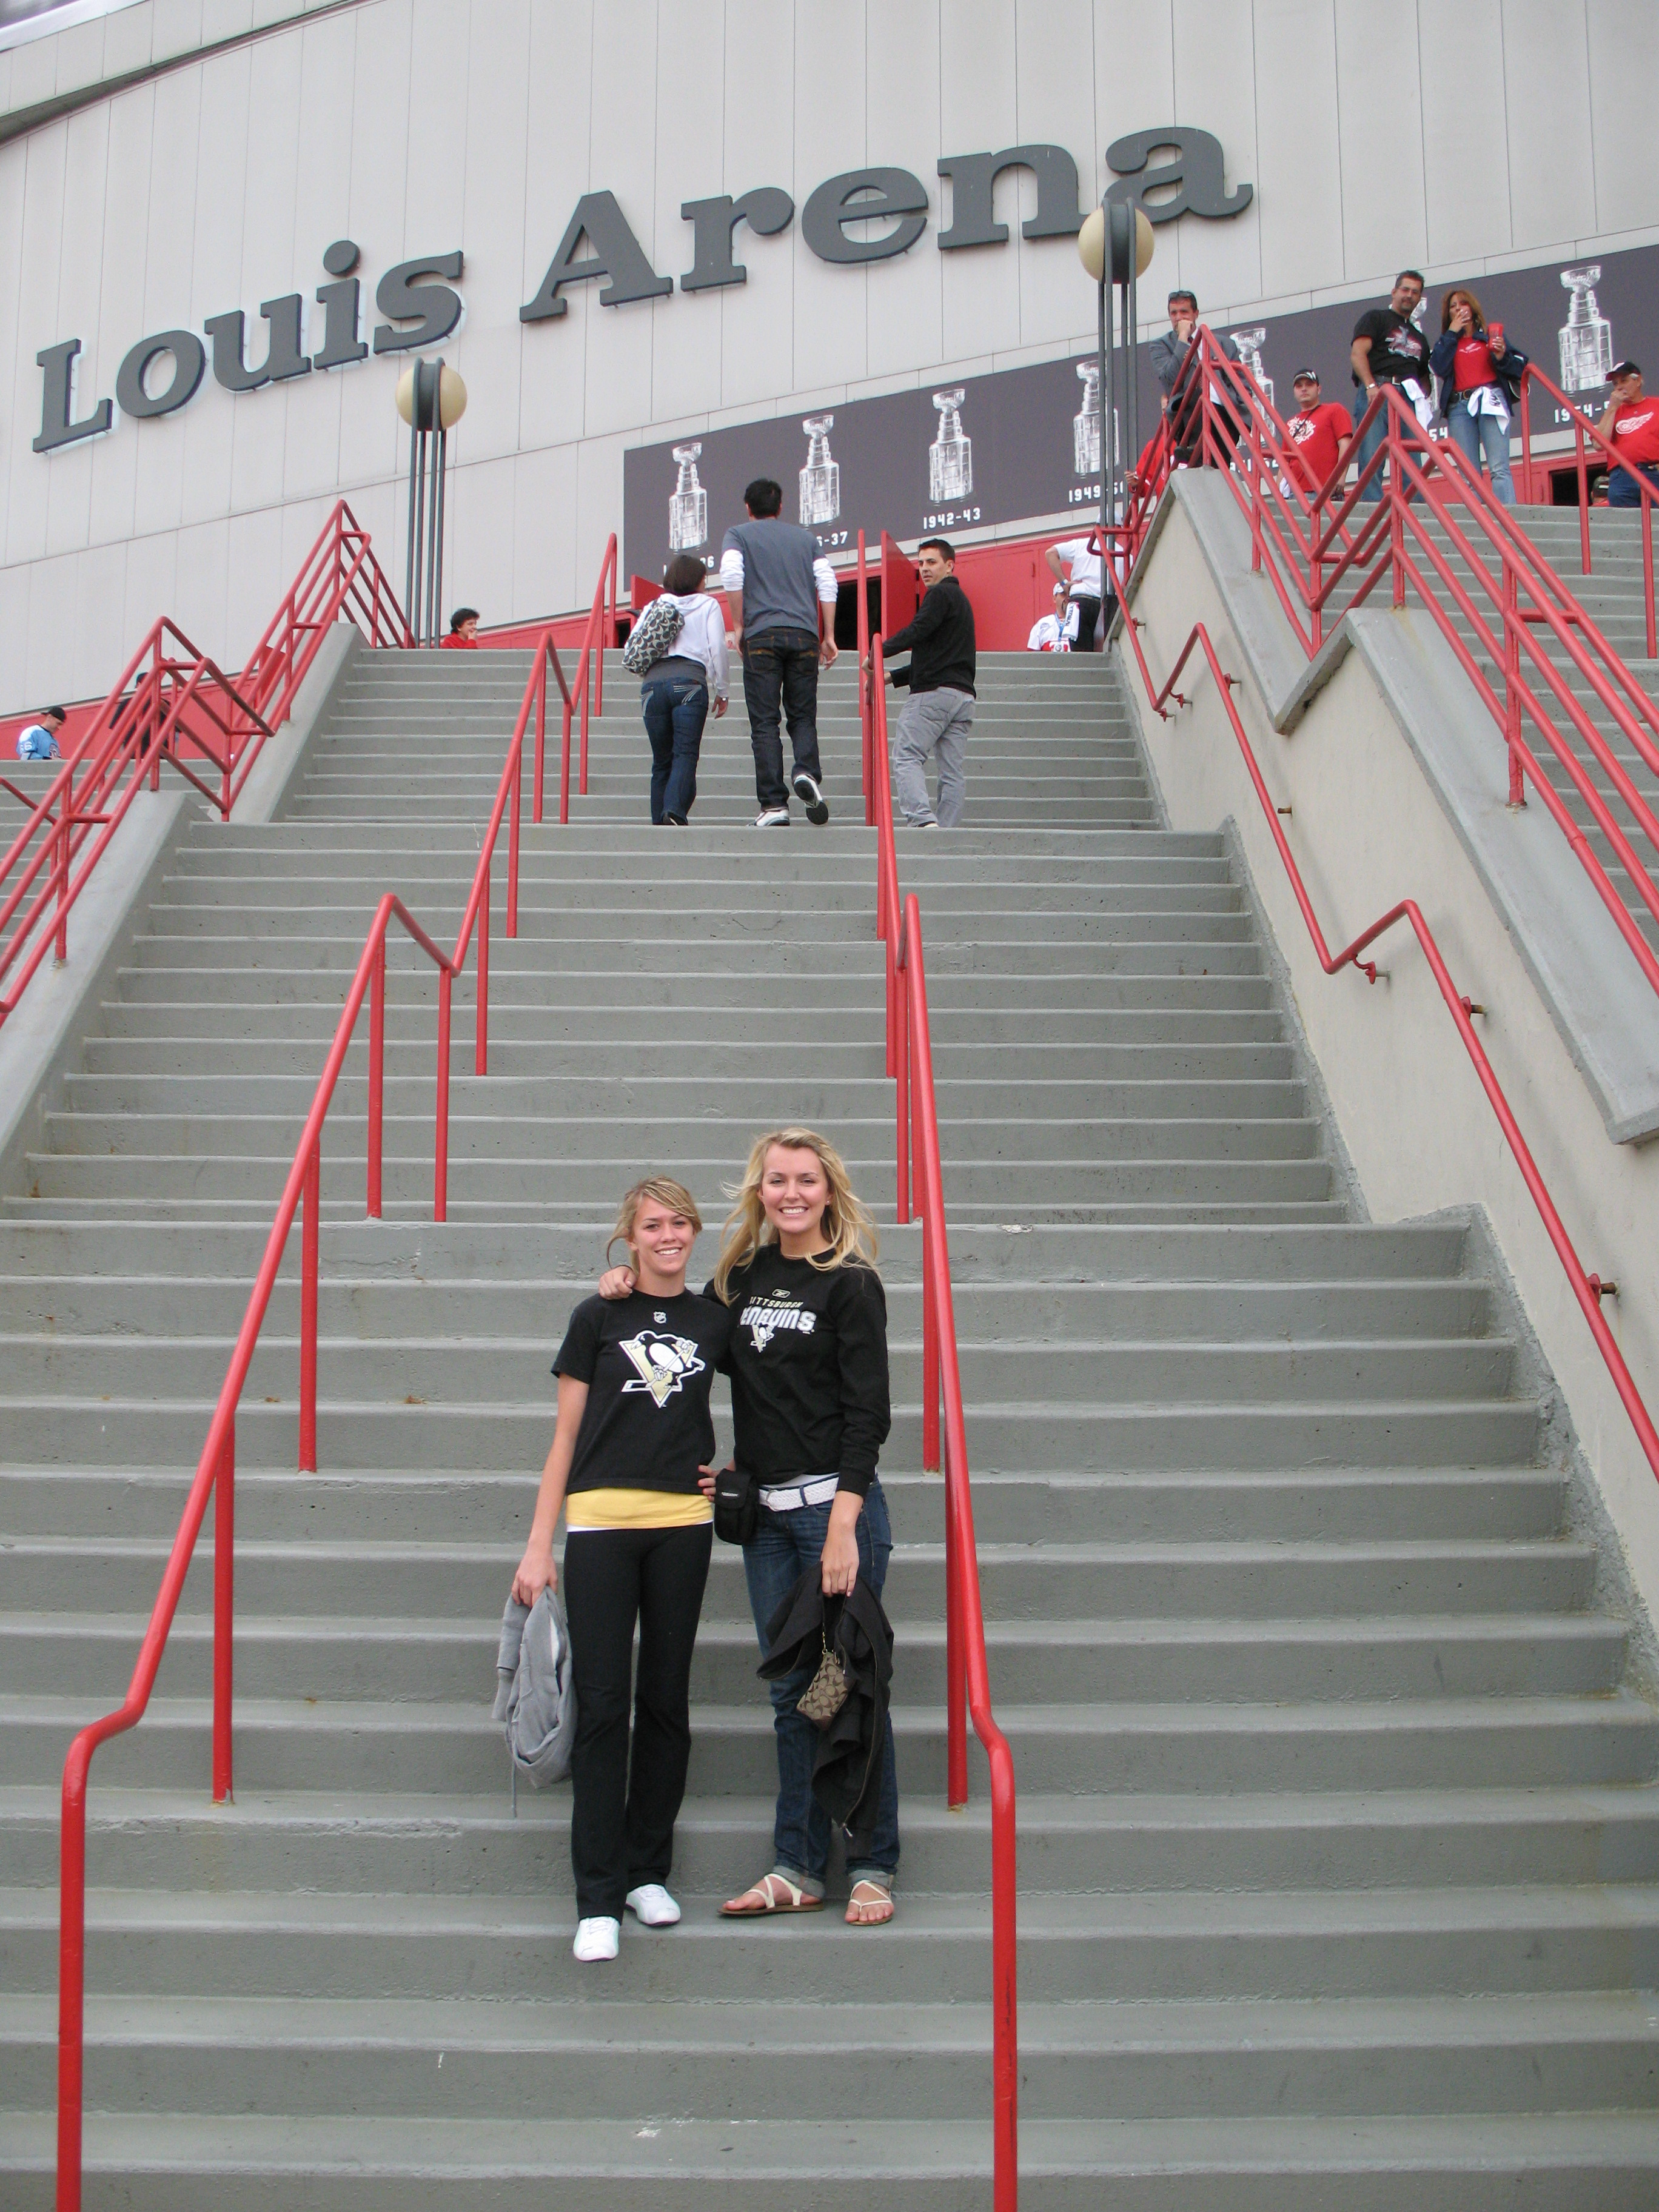 Outside Joe Louis Arena